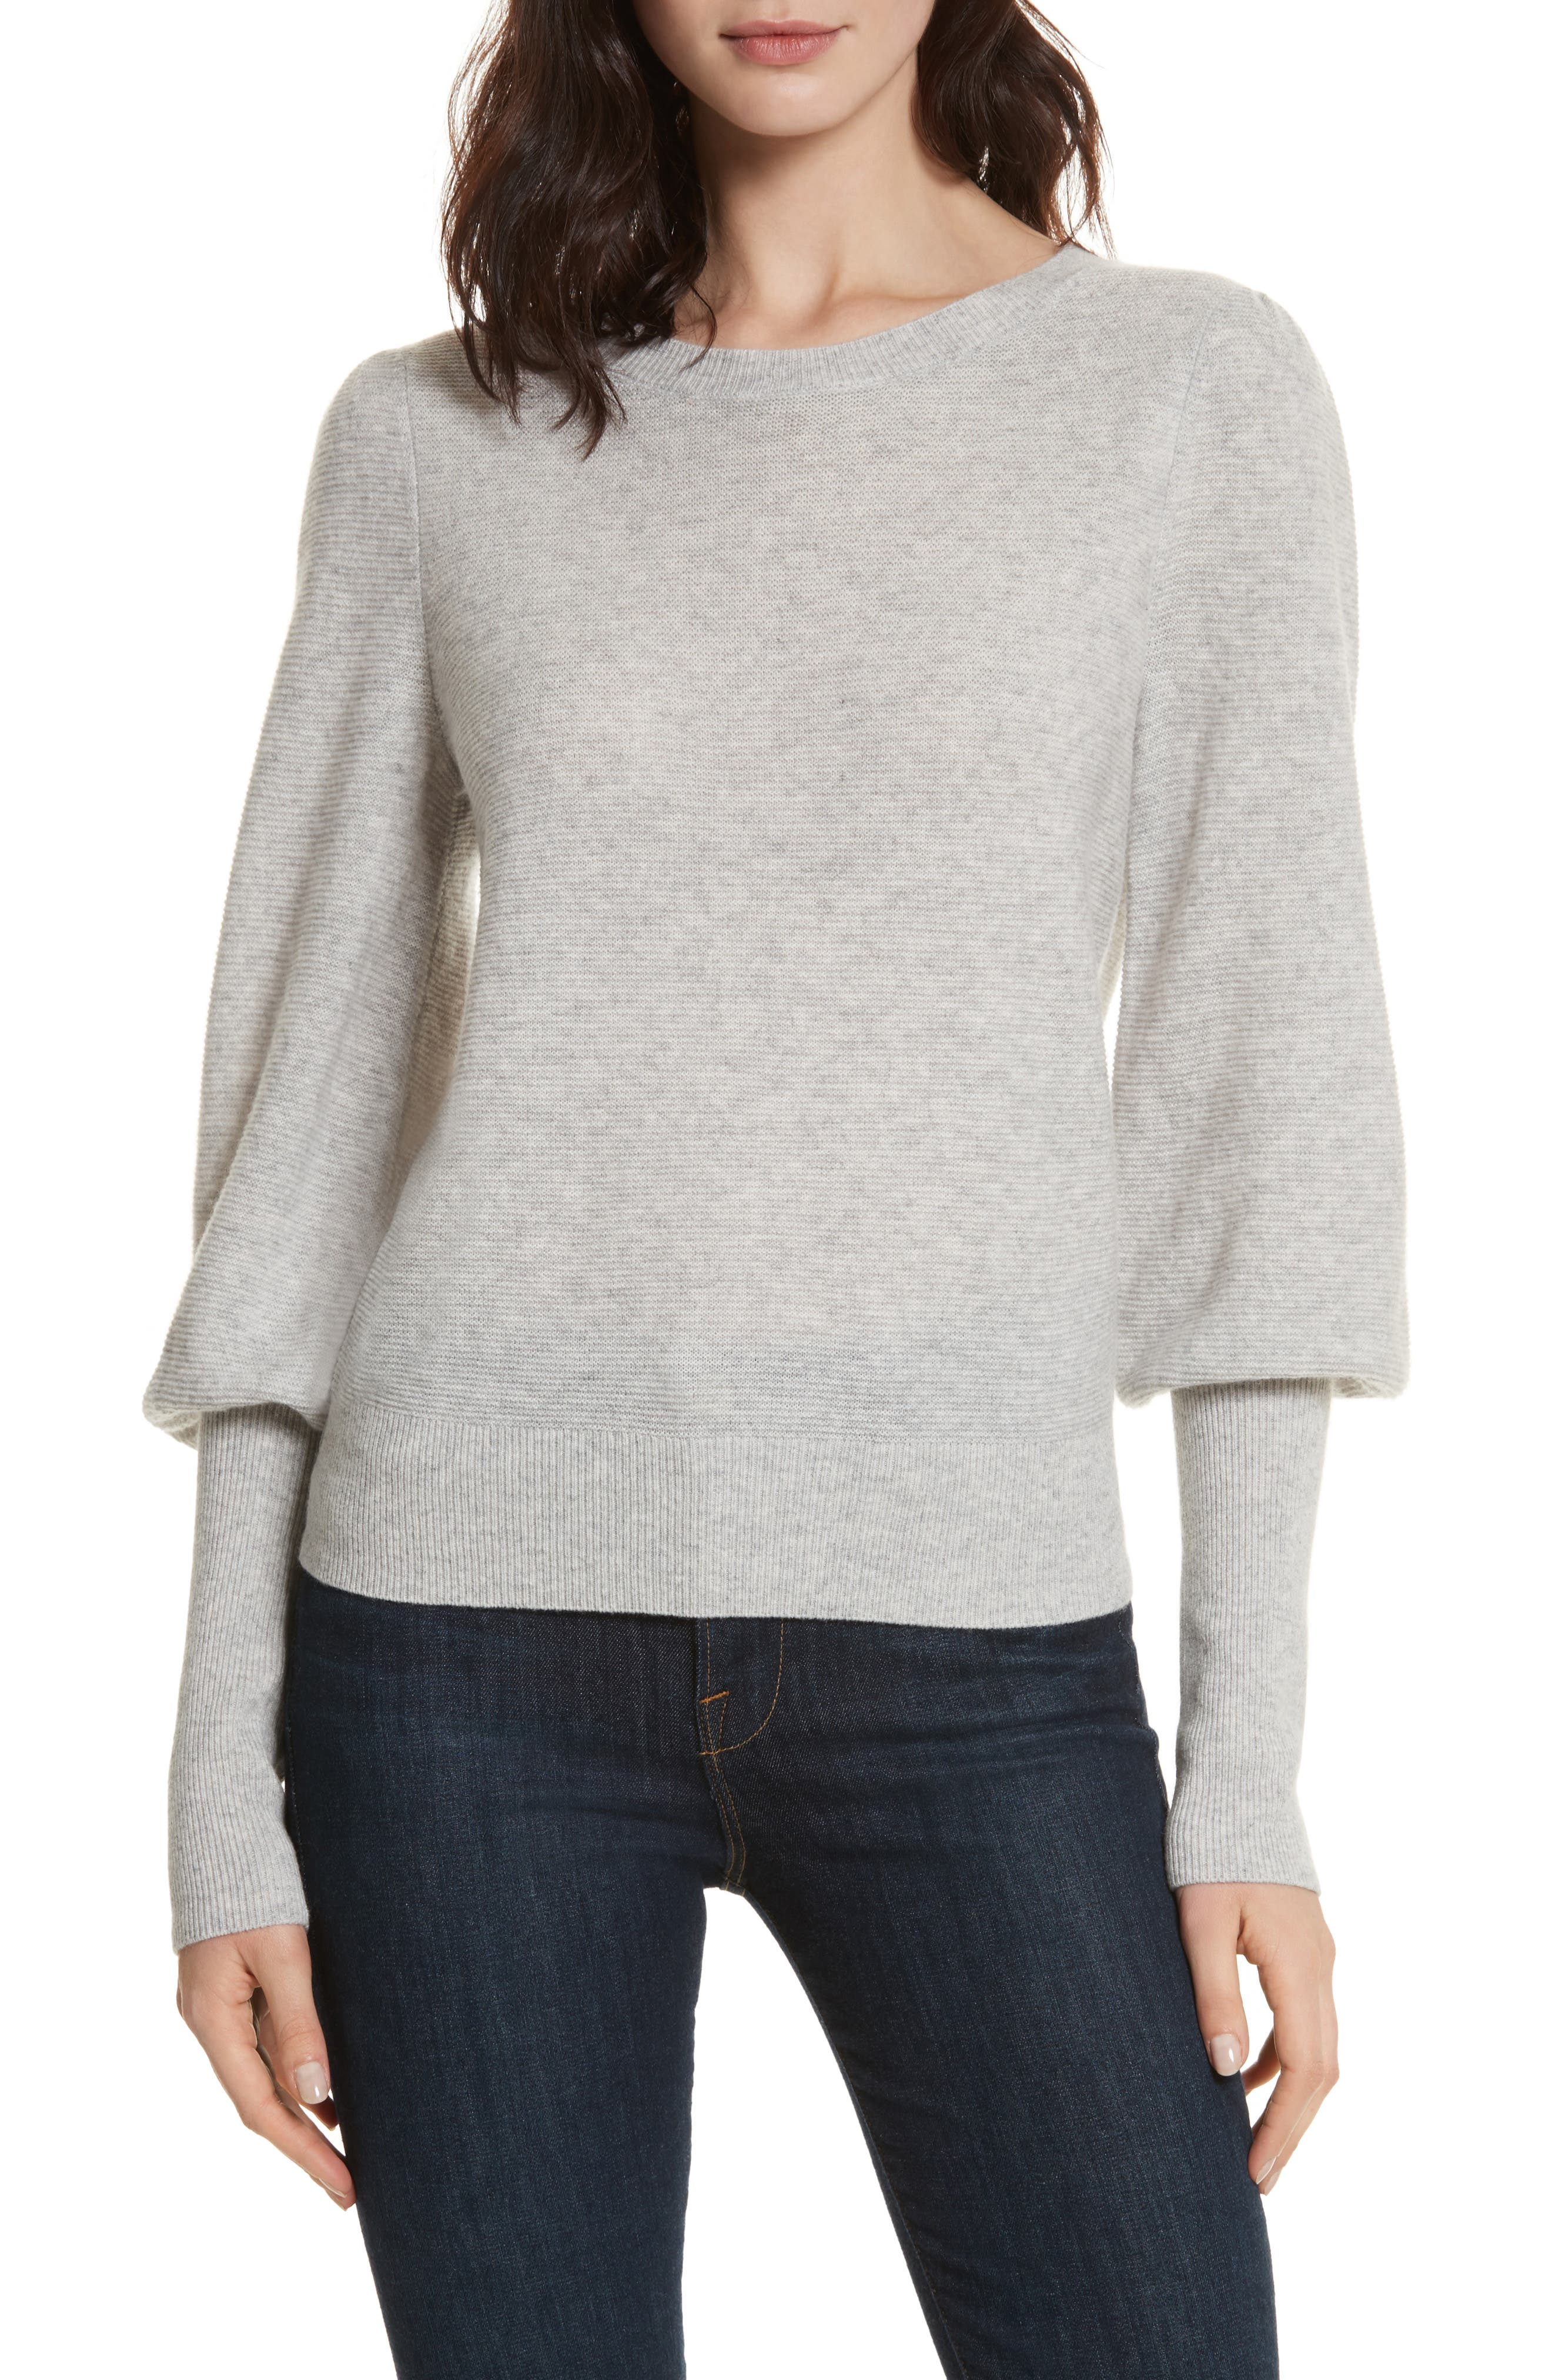 Noely Wool and Cashmere Sweater,                             Main thumbnail 1, color,                             Light Heather Grey